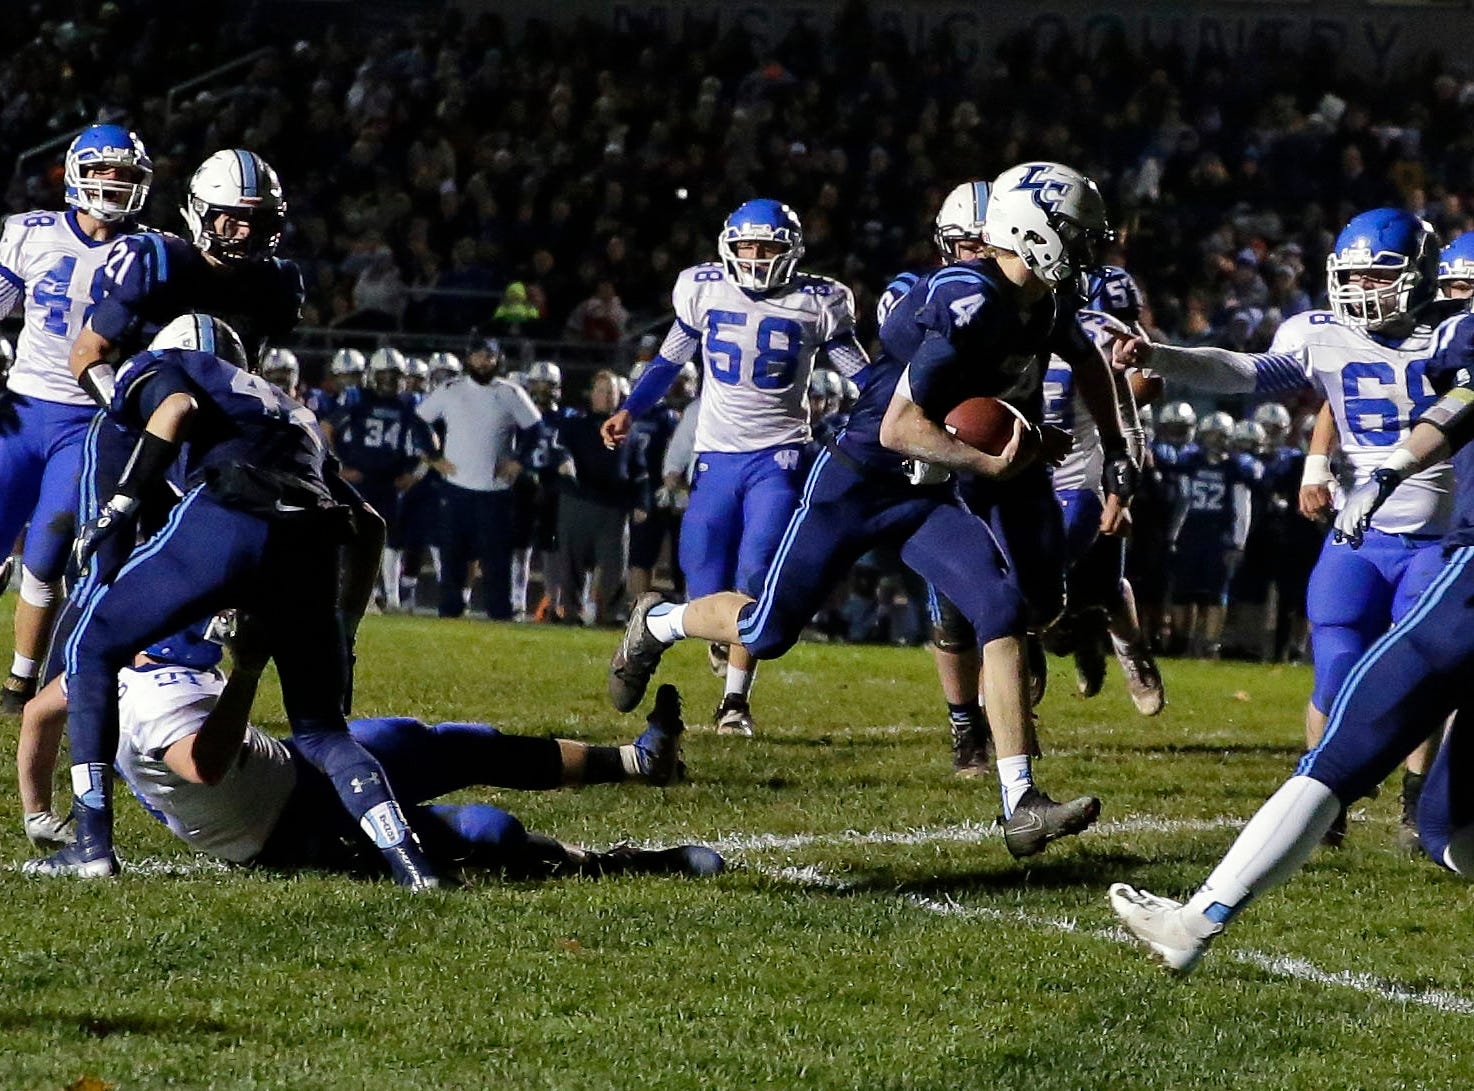 Noah Mueller of Little Chute runs in for a touchdown against Wrightstown in a WIAA Division 4 Level 3 playoff game Friday, November 2, 2018, at Fitzpatrick Field in Little Chute, Wis.Ron Page/USA TODAY NETWORK-Wisconsin